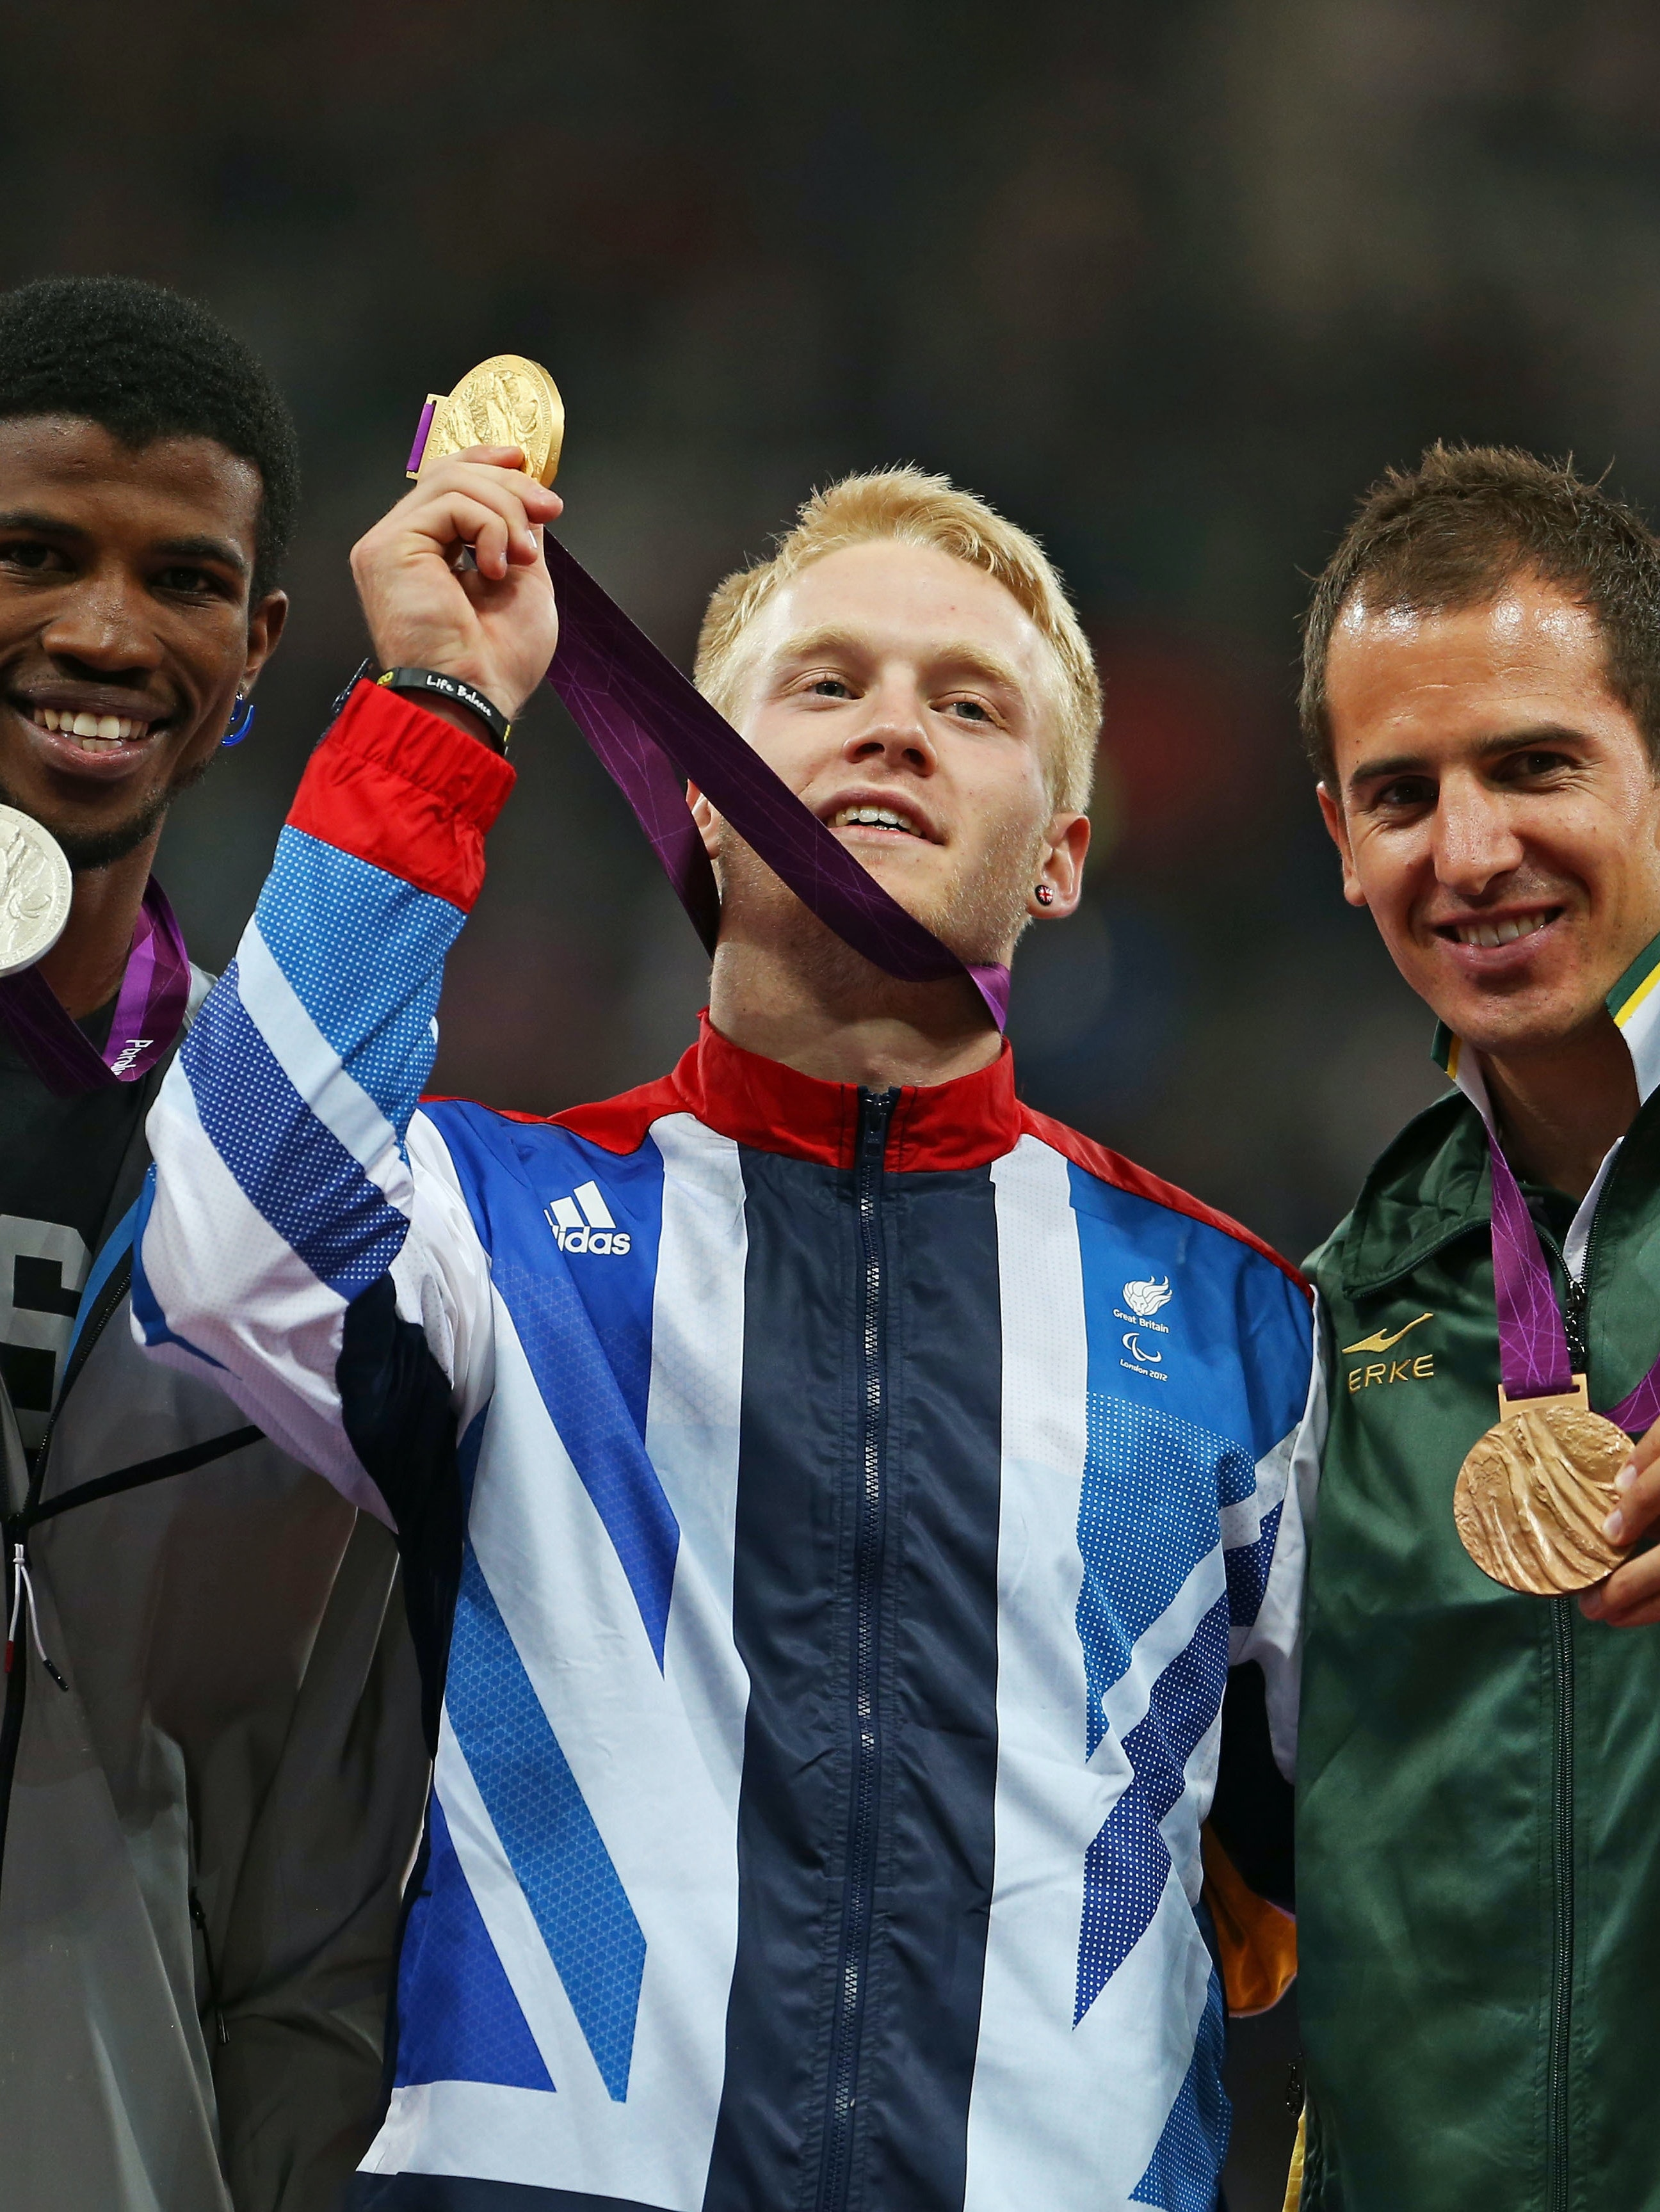 LONDON, ENGLAND - SEPTEMBER 06:  (L-R) Silver medalist Richard Browne of the United States , Gold medalist Jonnie Peacock of Great Britain, Bronze medalist Arnu Fourie of South Africa pose on the podium during the victory ceremony for the Men's 100m - T44 Final on day 8 of the London 2012 Paralympic Games at Olympic Stadium on September 6, 2012 in London, England.  (Photo by Julian Finney/Getty Images)